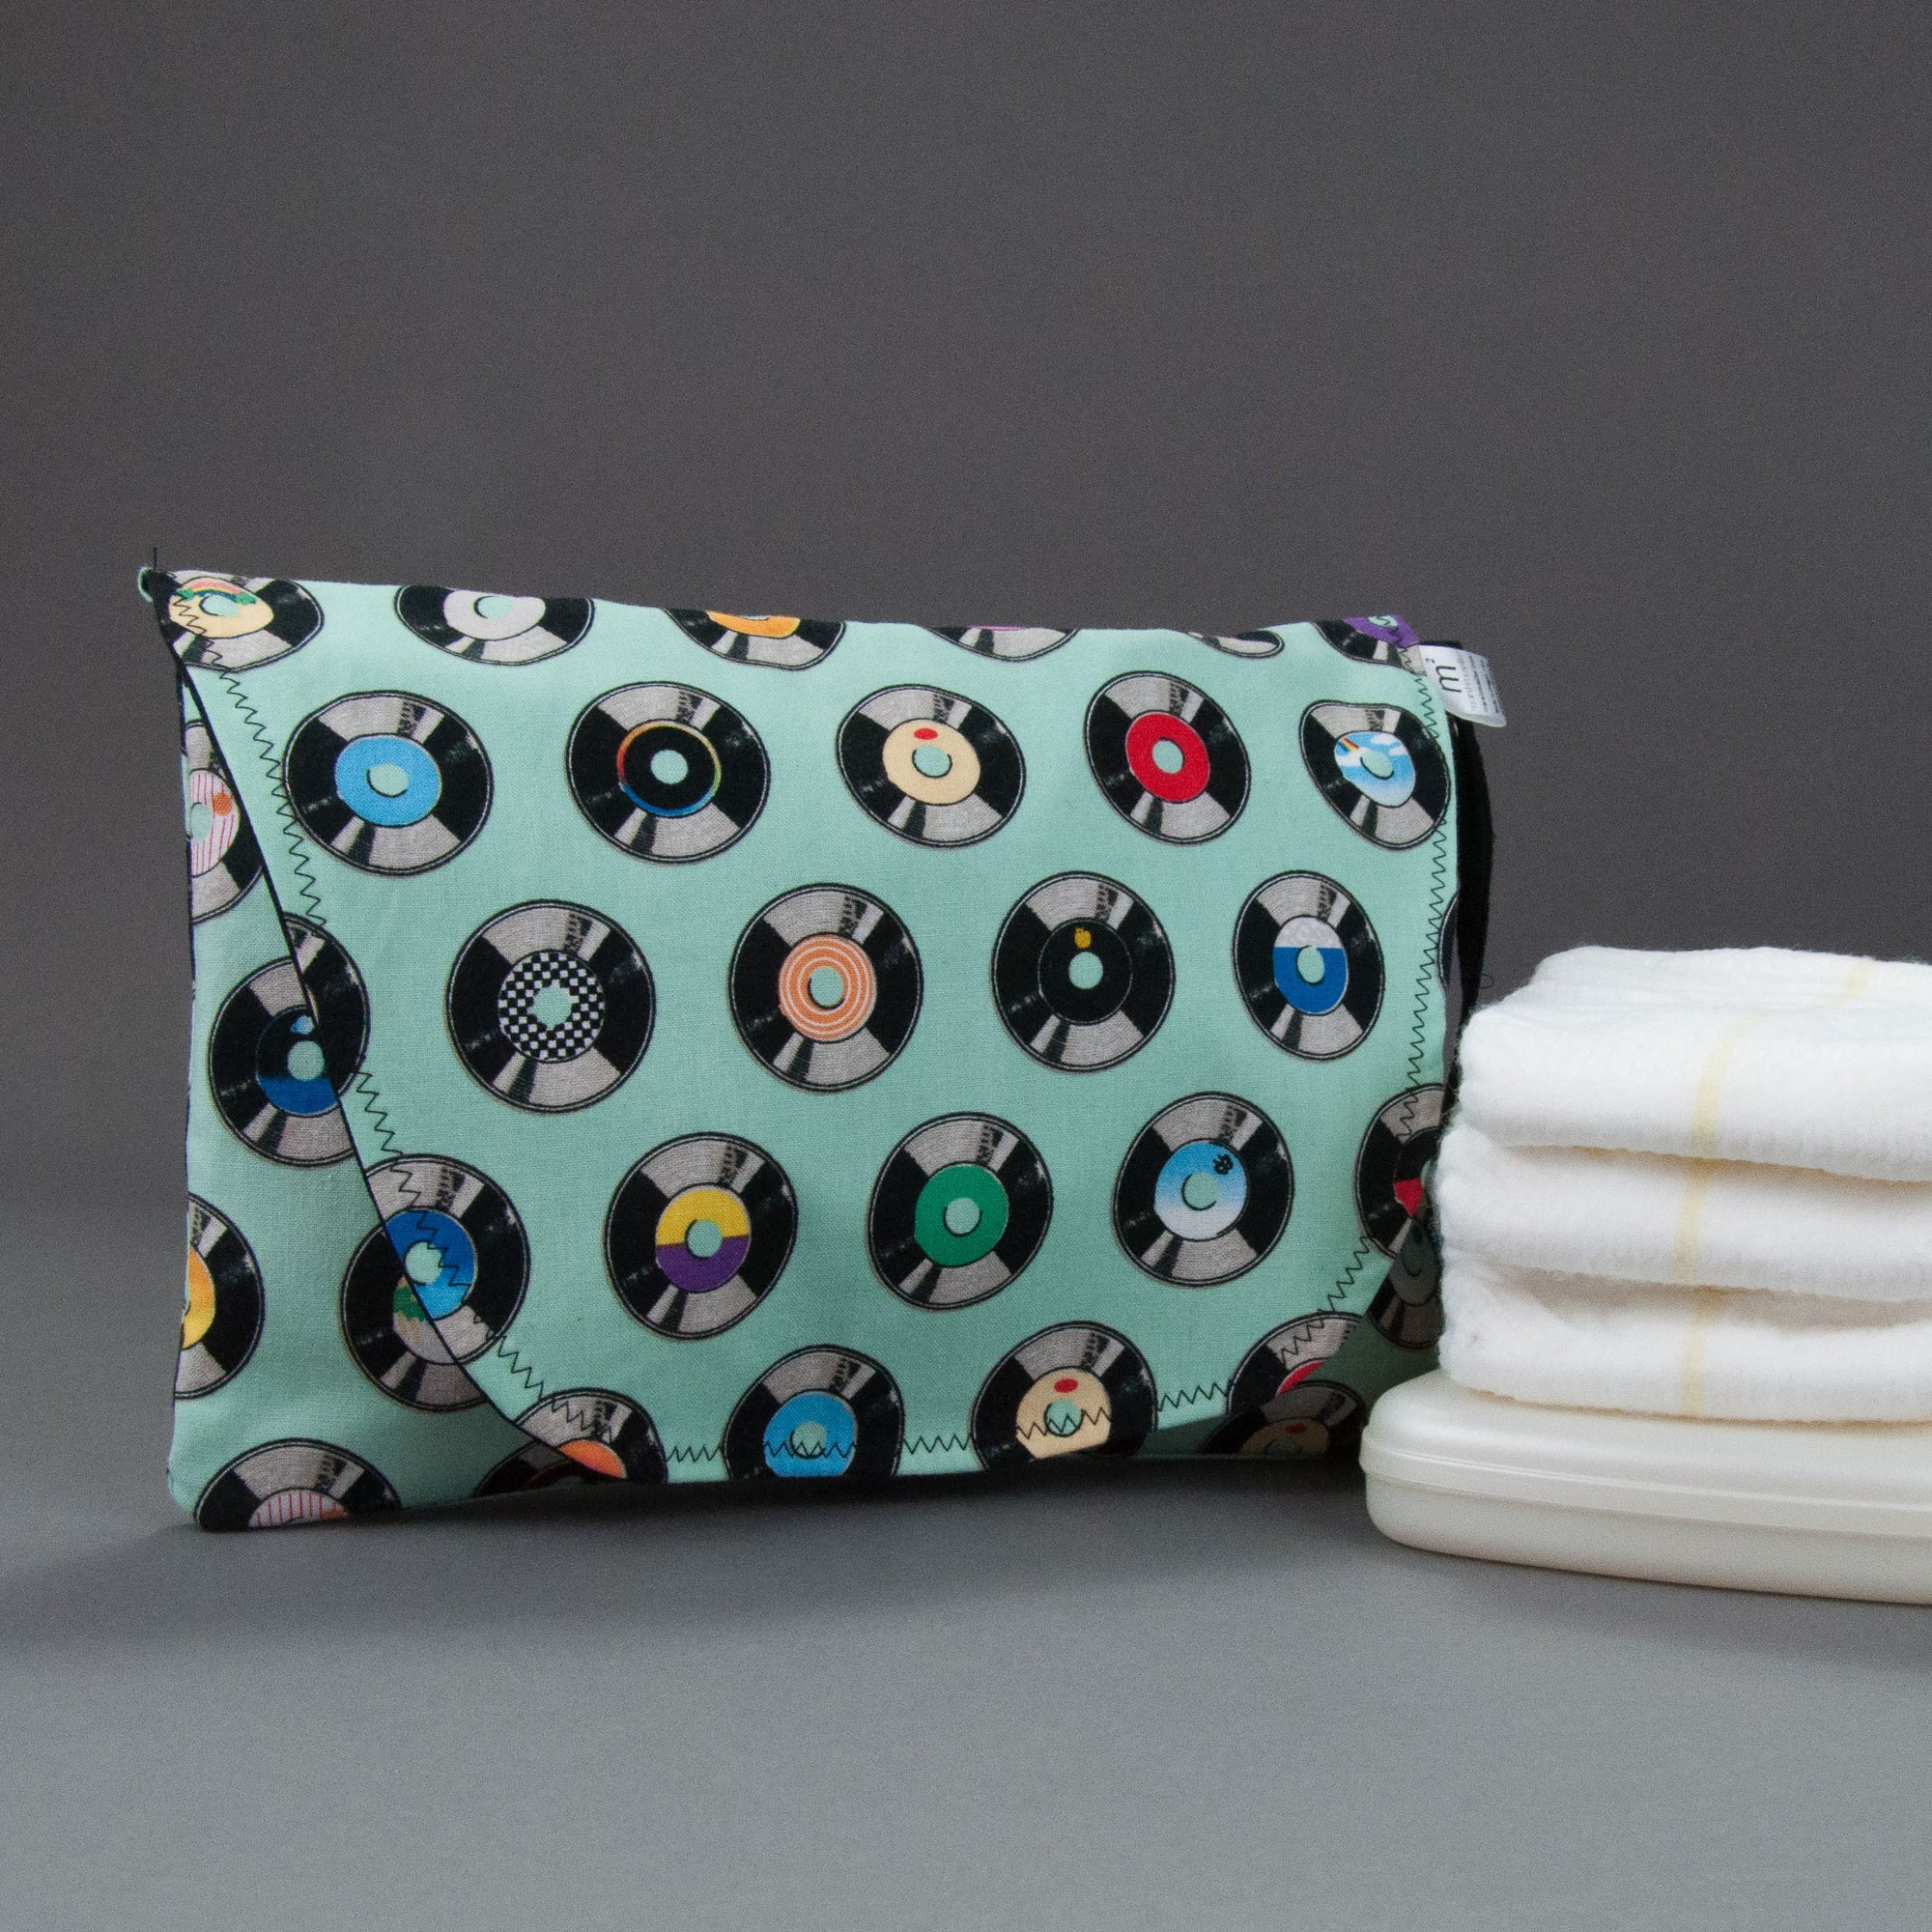 Aqua Vintage Records Diaper + Wipe Clutch, Image of an aqua diaper pouch next to diapers and wipes